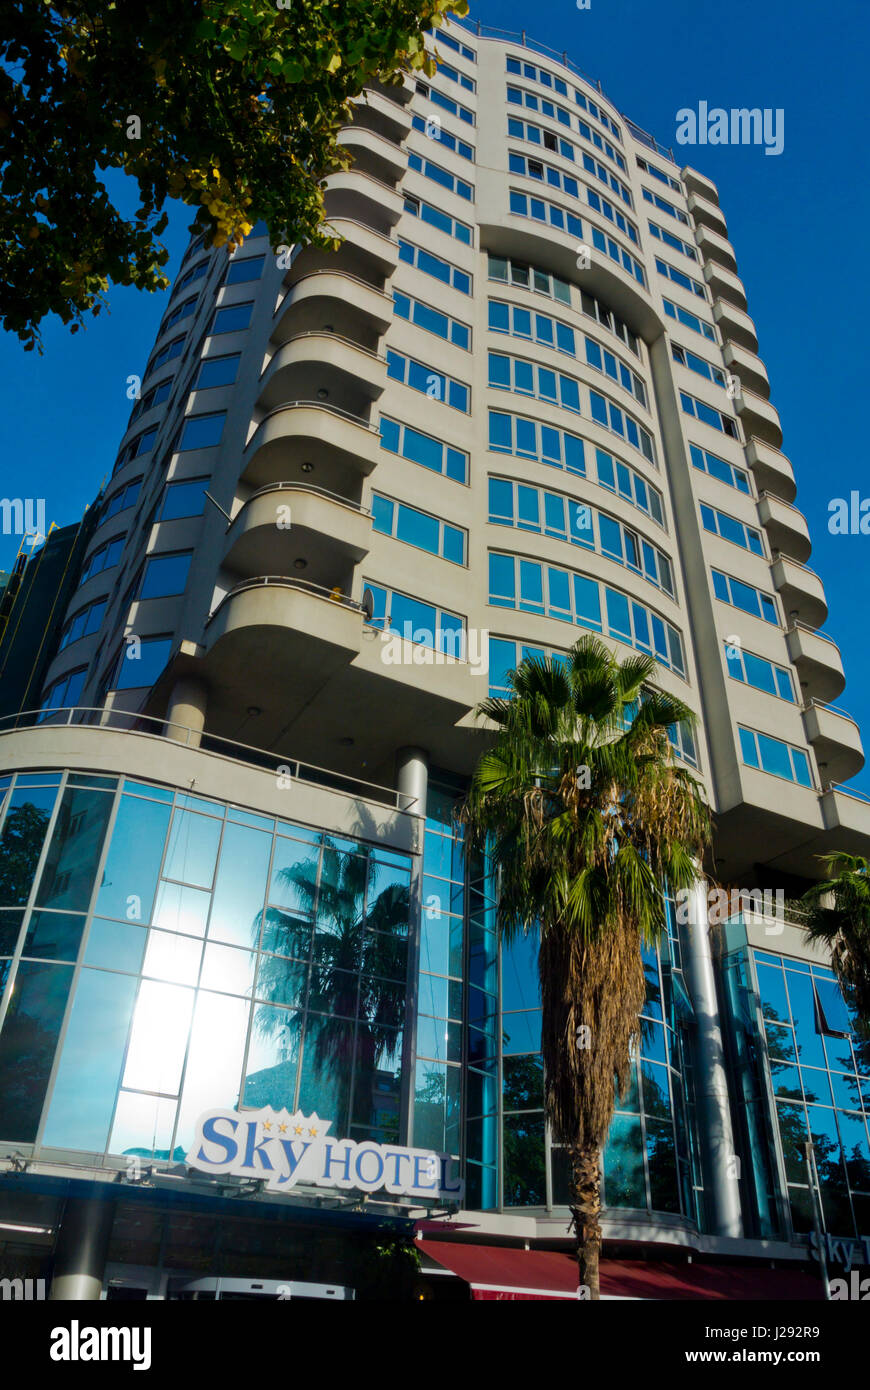 Sky Hotel, four star hotel, Blloku district, Tirana, Albania - Stock Image